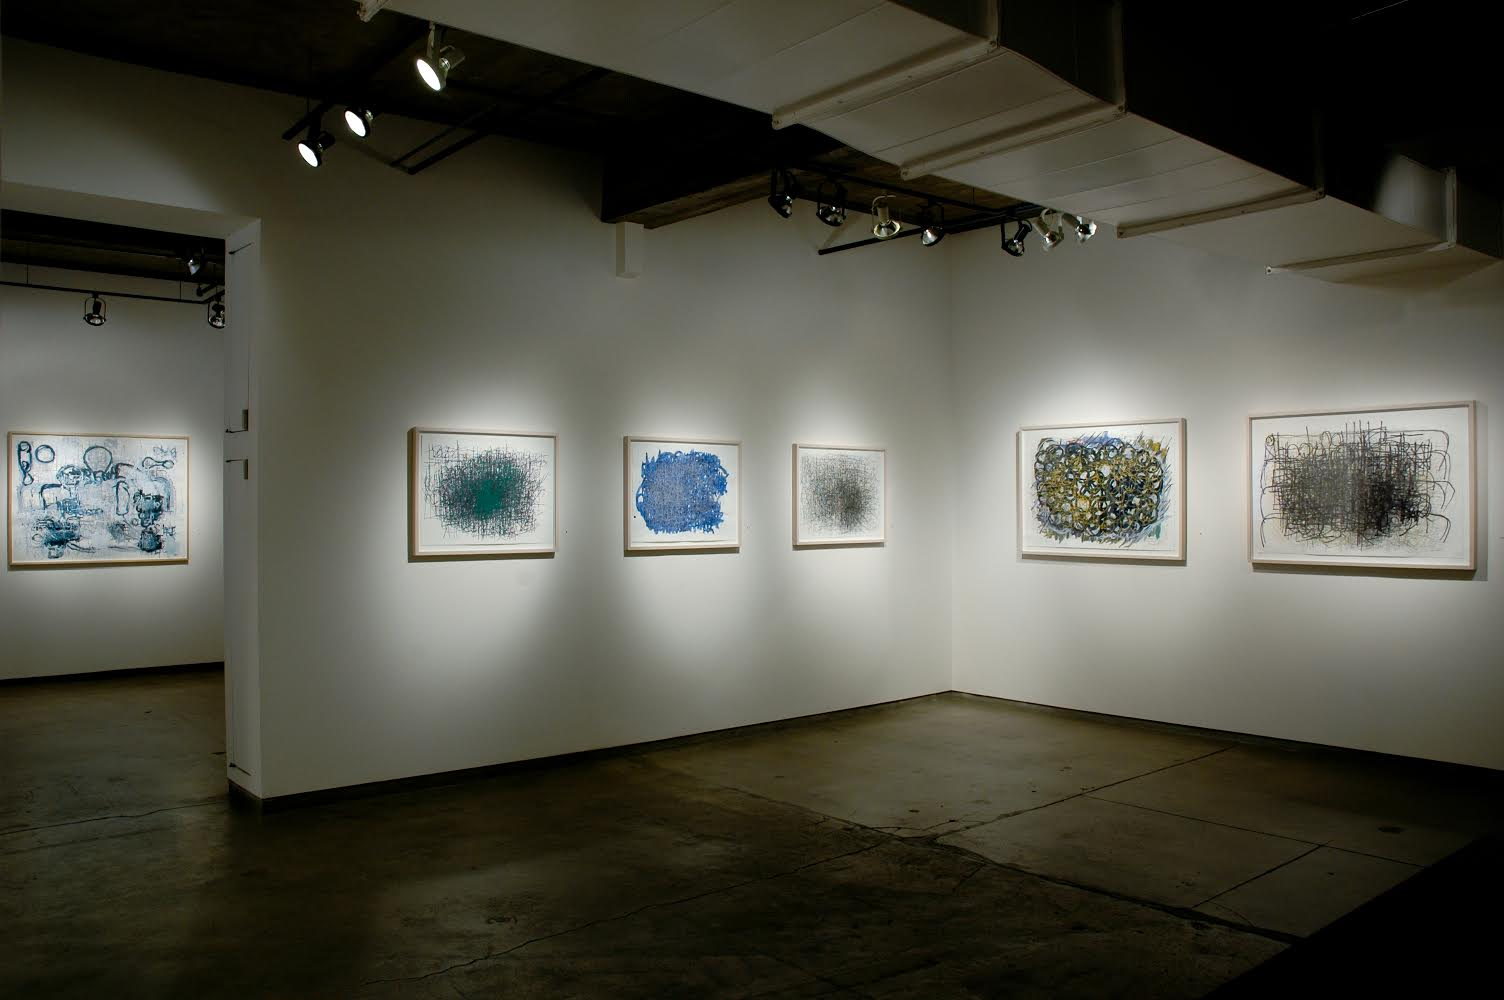 Installation view of Creative Growth: Dan Miller exhibition at Ricco Maresca Gallery, New York